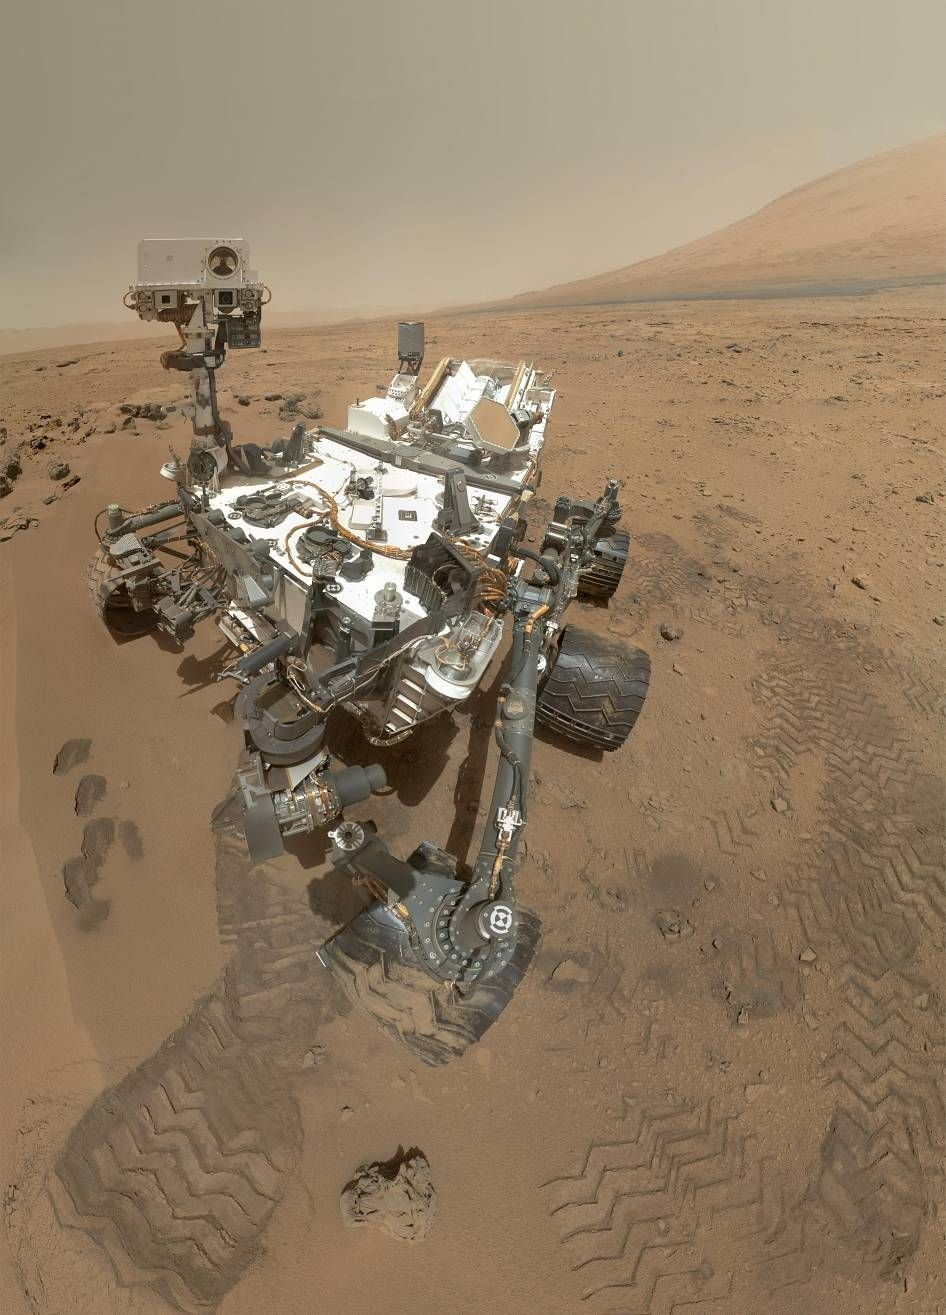 NASA's Curiosity Rover Is Suffering From a Computer Glitch